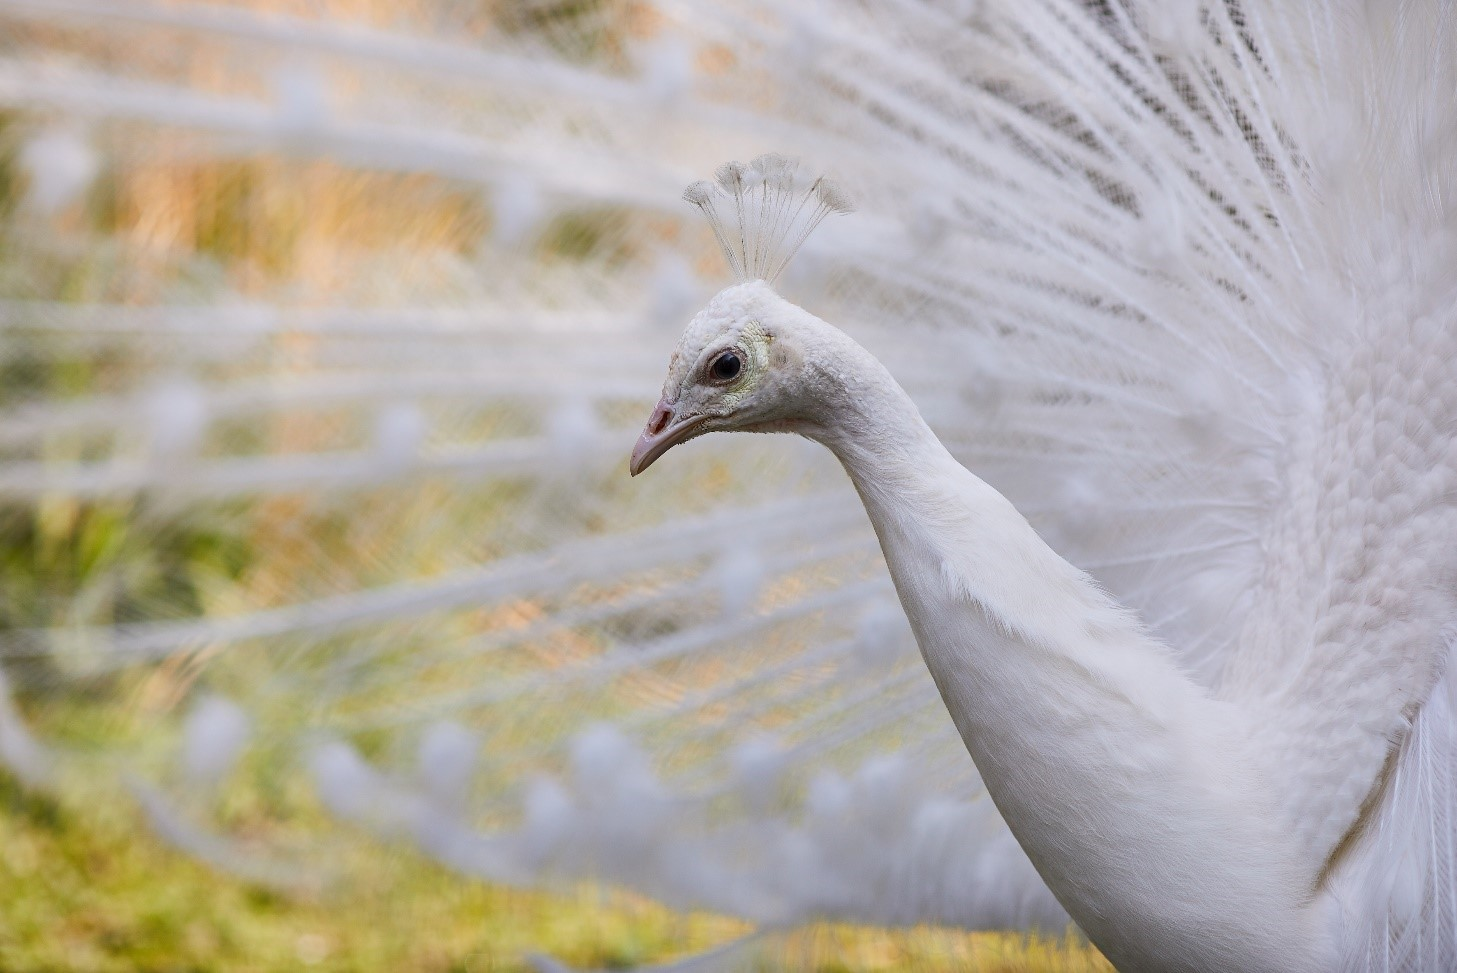 Close up showing the head and neck of a white peacock, with the spread of tail feathers in the background.